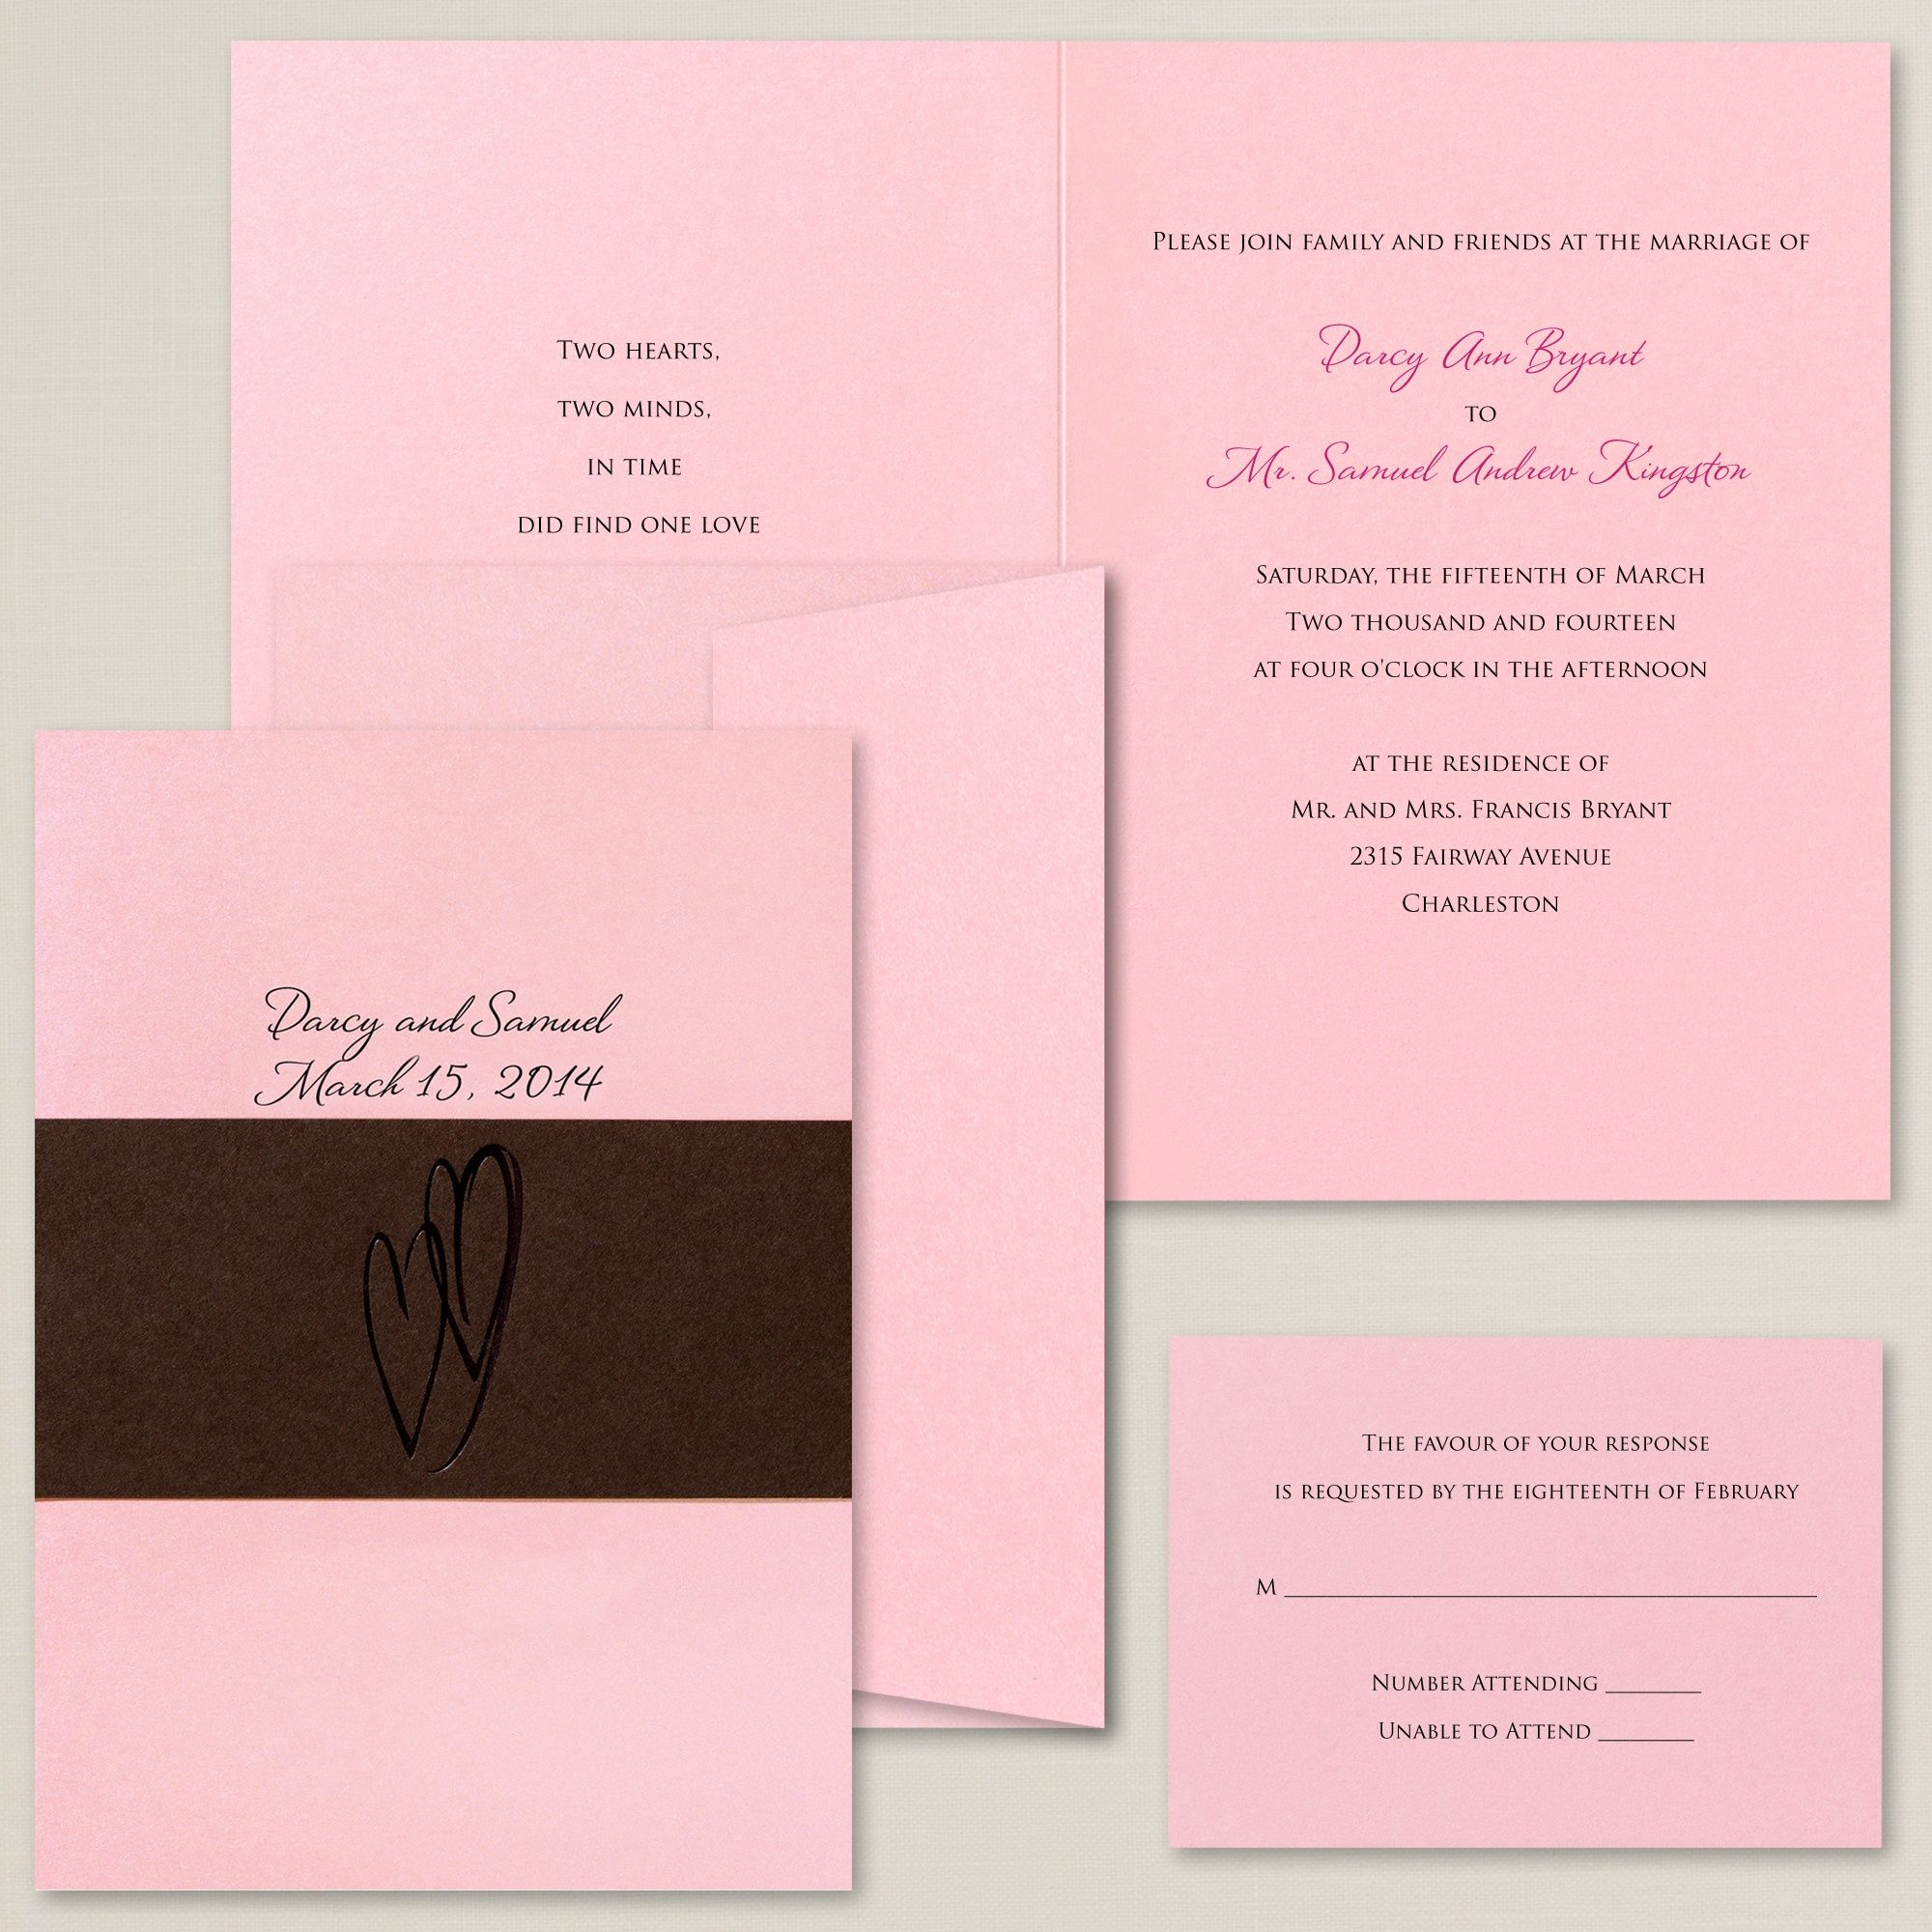 Exclusively Weddings Hearts Delight Wedding Invitations Is A Heart Design Twin Embellish The Charming Wrap On This Contemporary Invitation